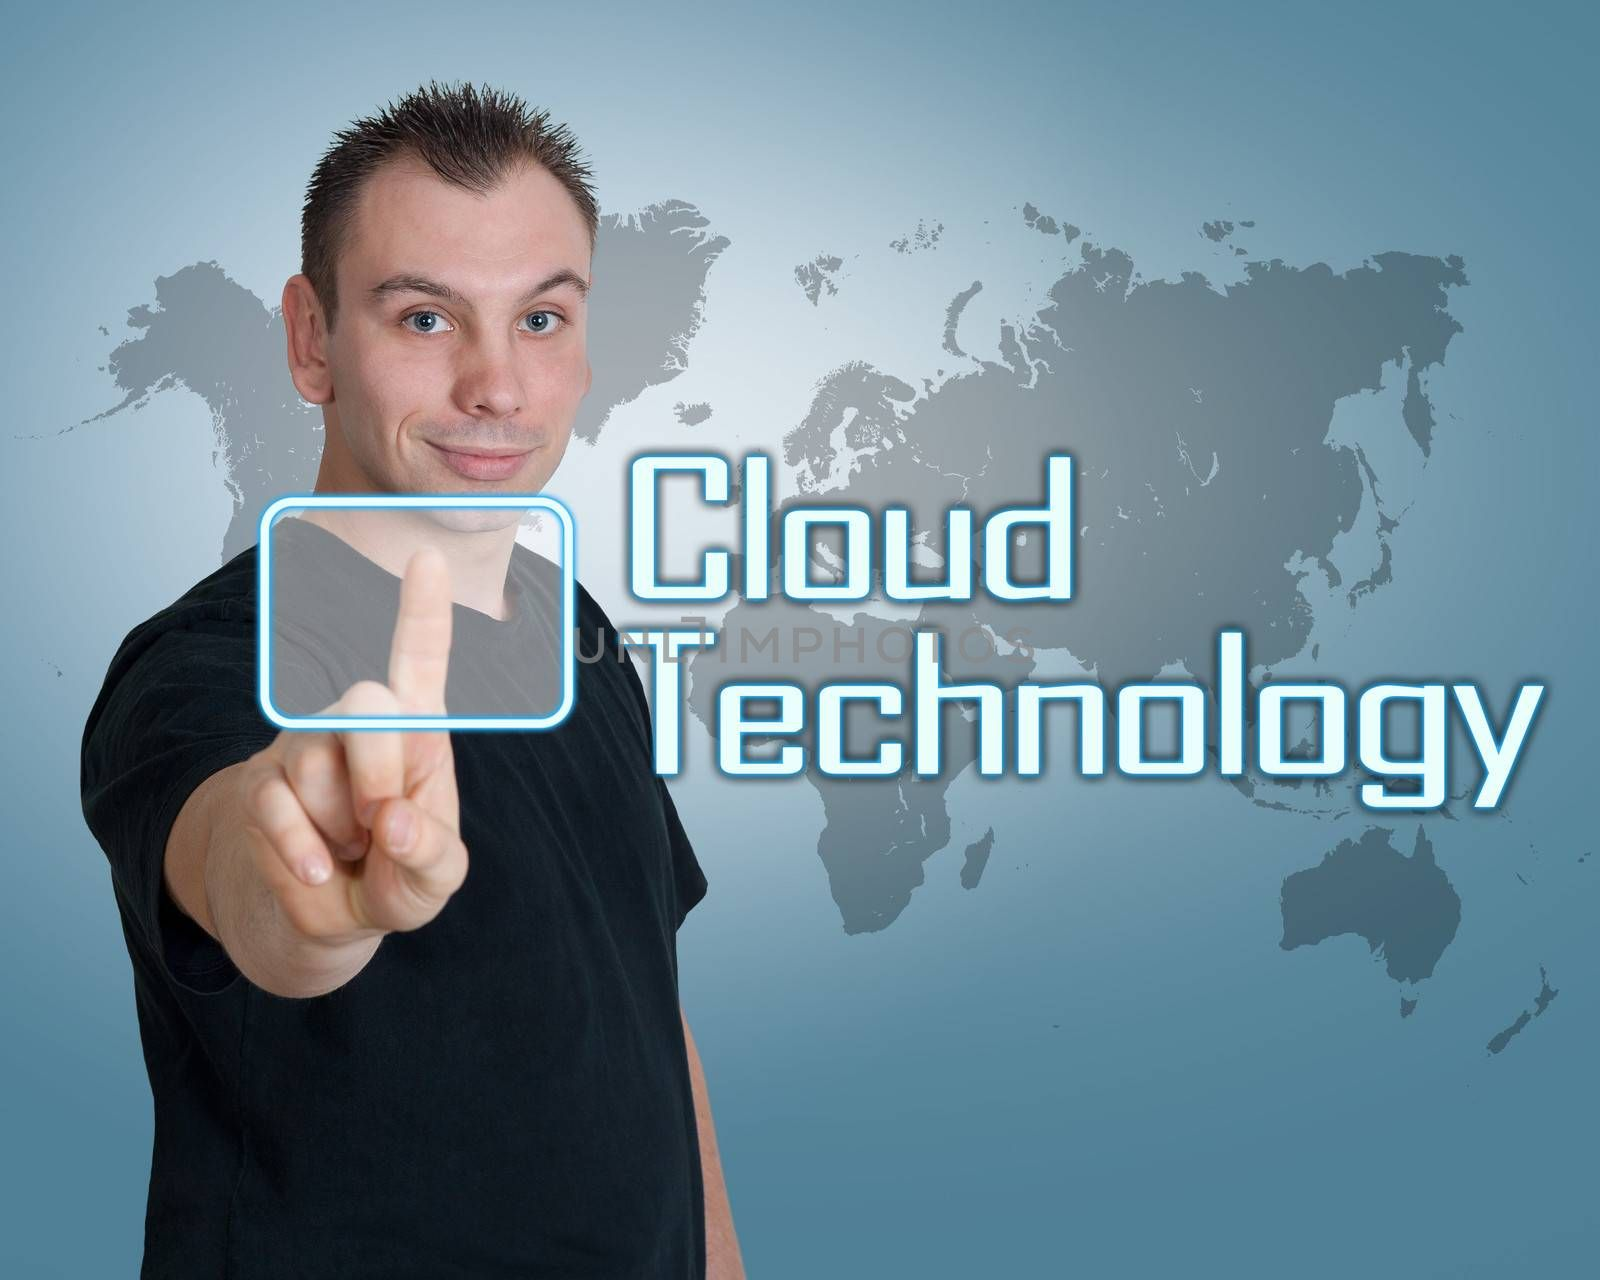 Young man press digital Cloud Technology button on interface in front of him